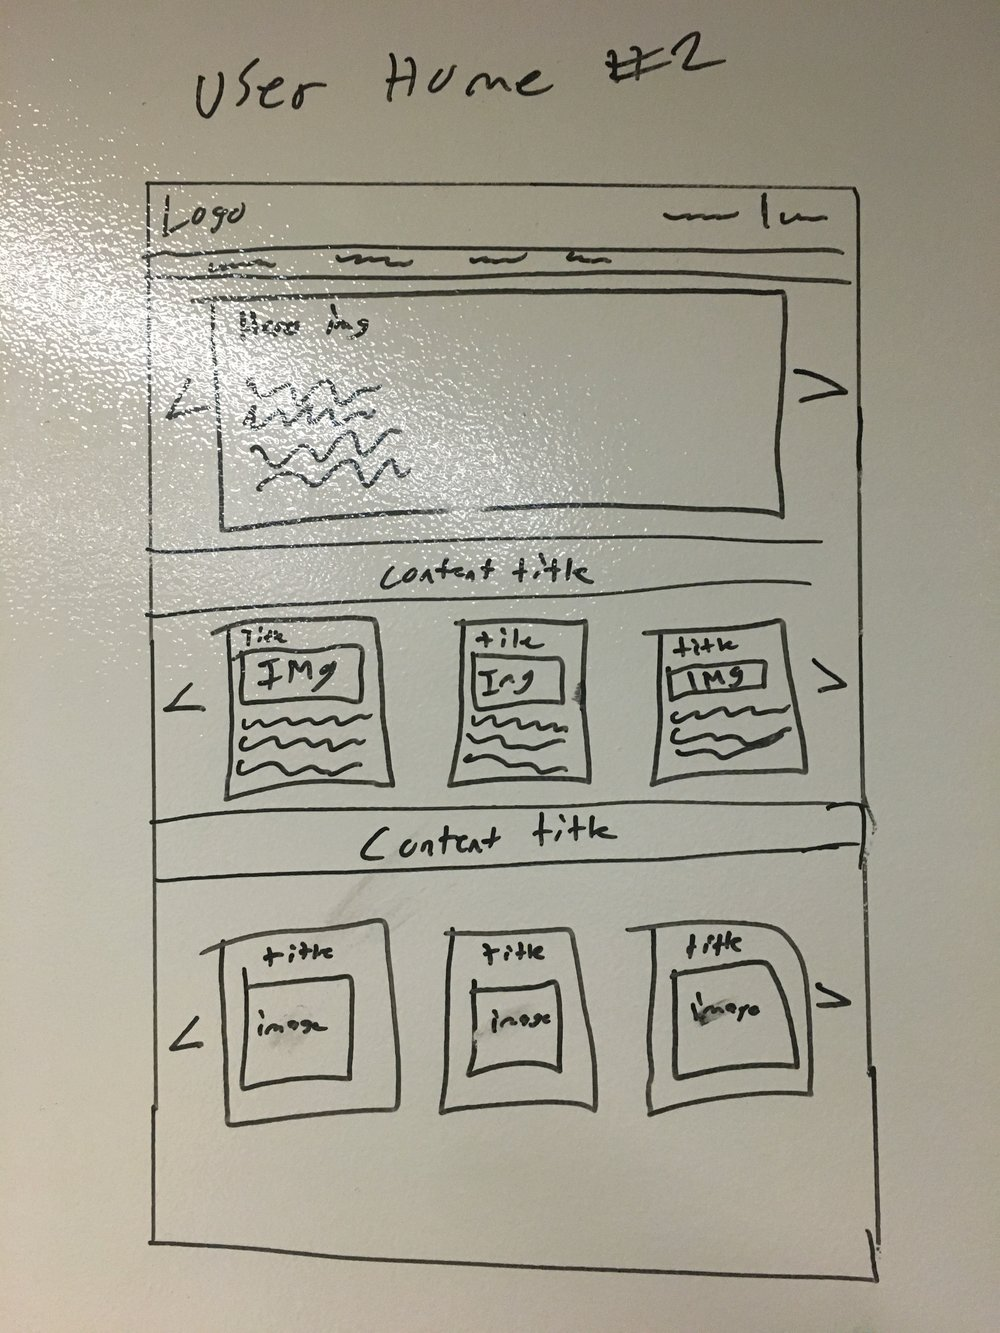 Sketch of User Home Feed #2